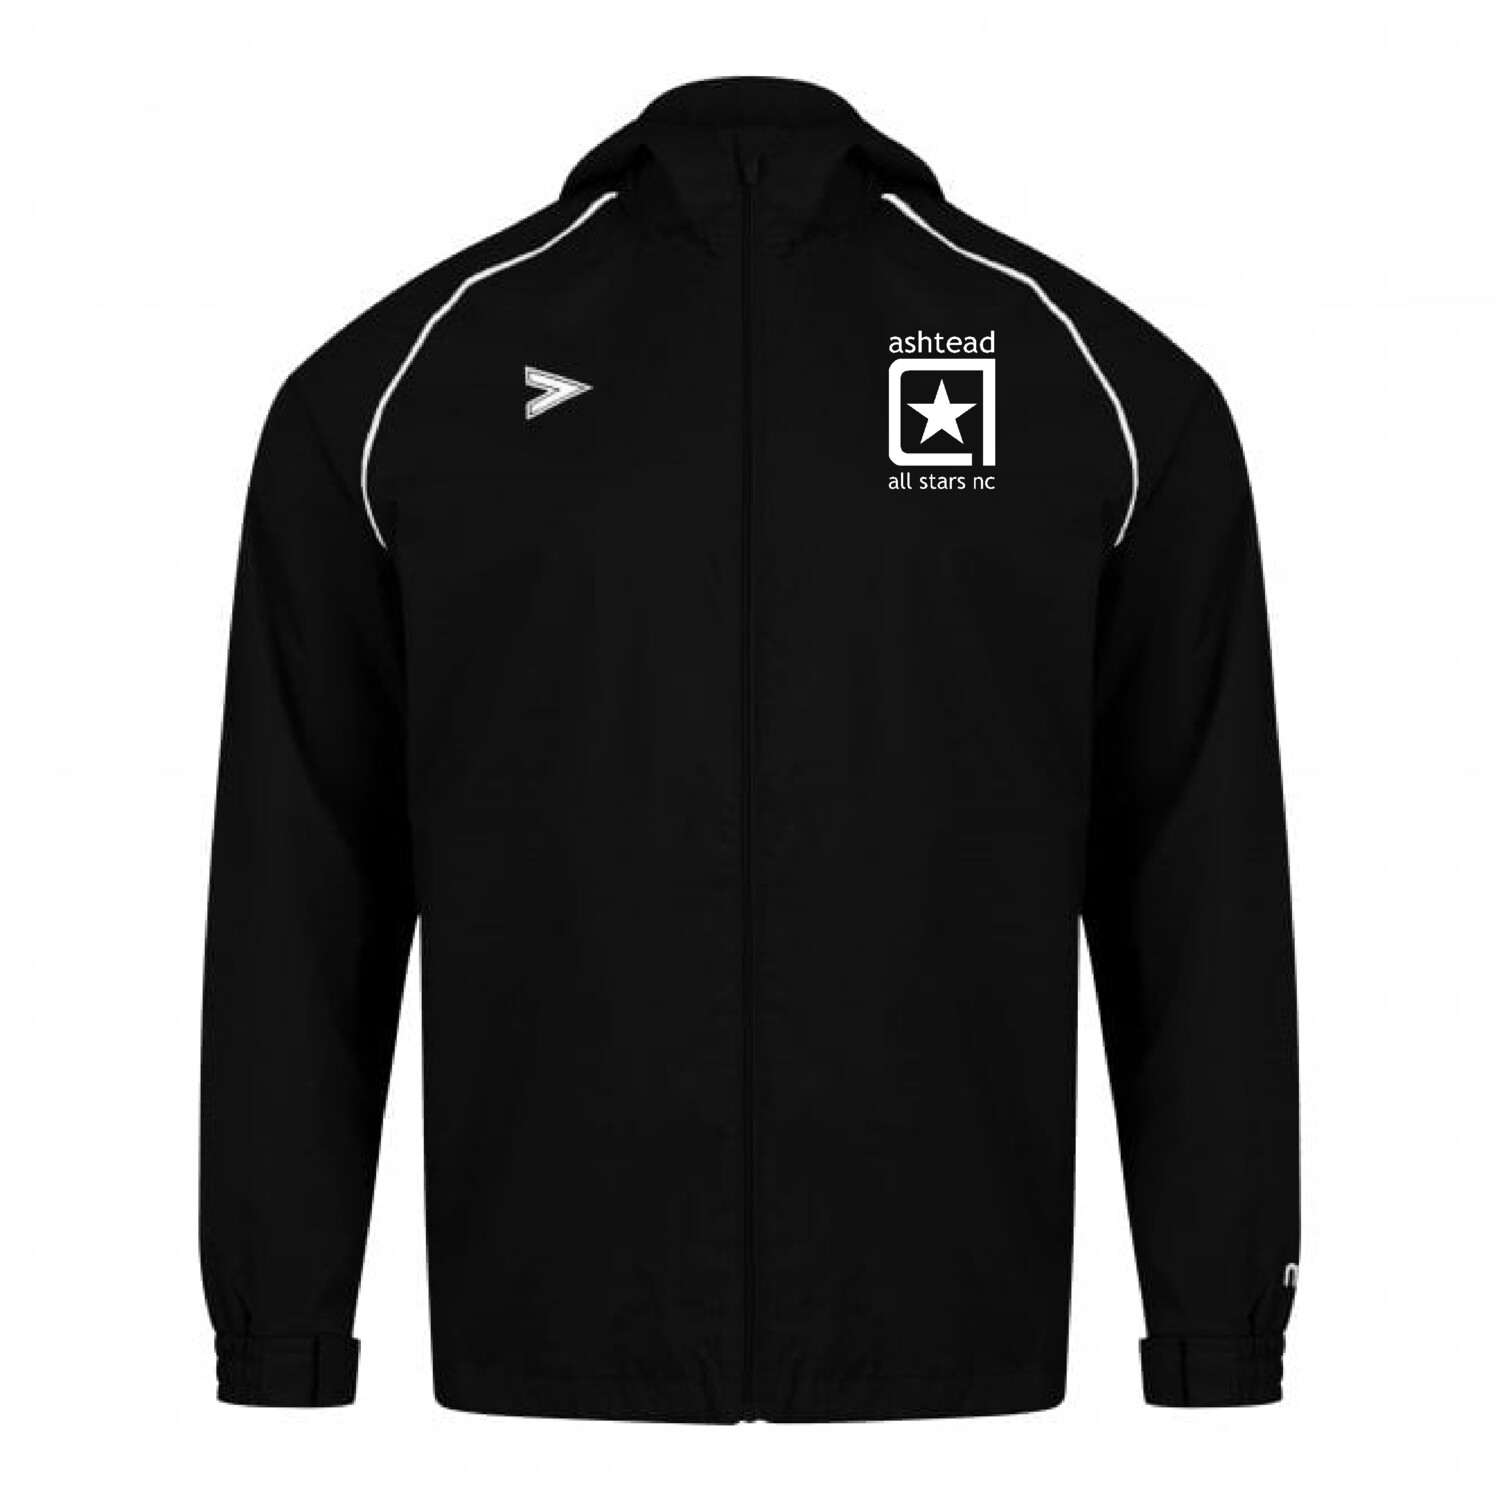 Ashtead All Stars Rainjacket